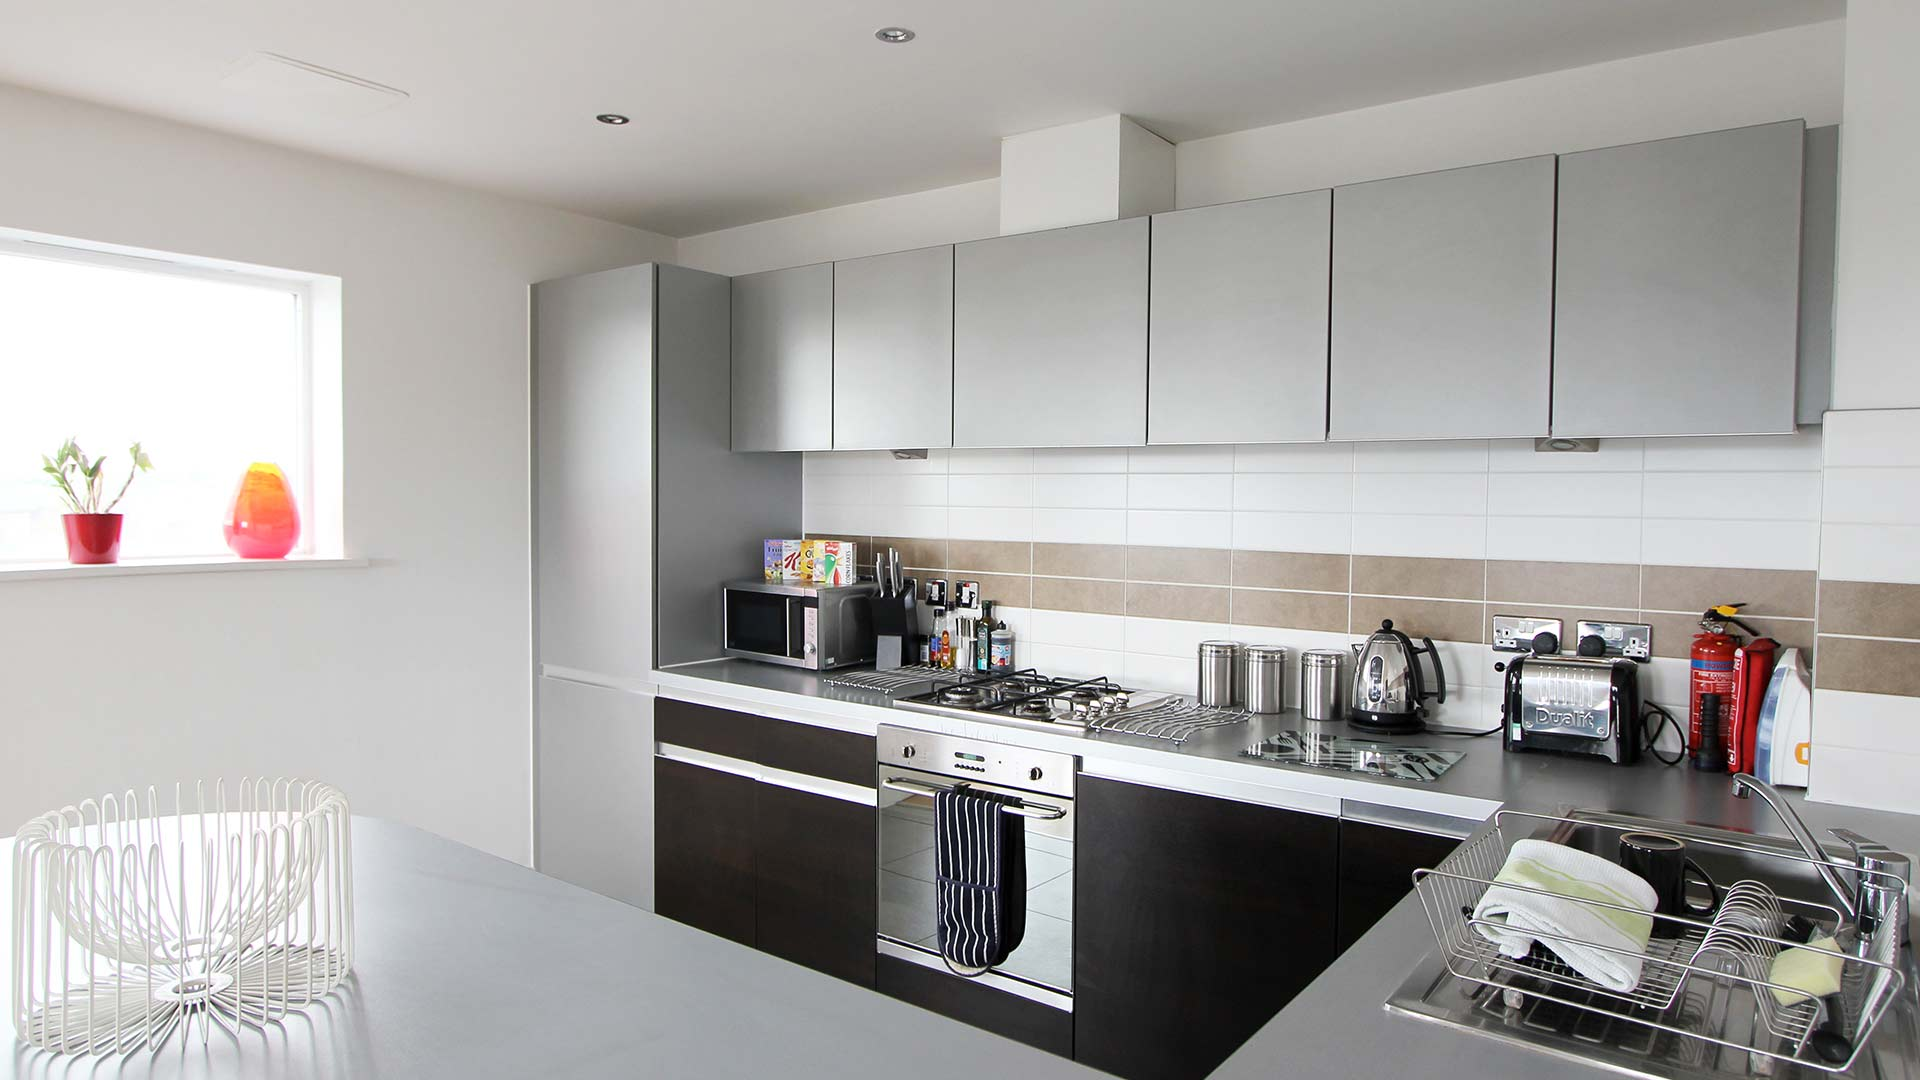 Looking-for-affordable-apartments-in-Cambridge?-why-not-book-our-Chesterton-Serviced-Apartments-in-Cambridge?-call-today-for-great-rates.